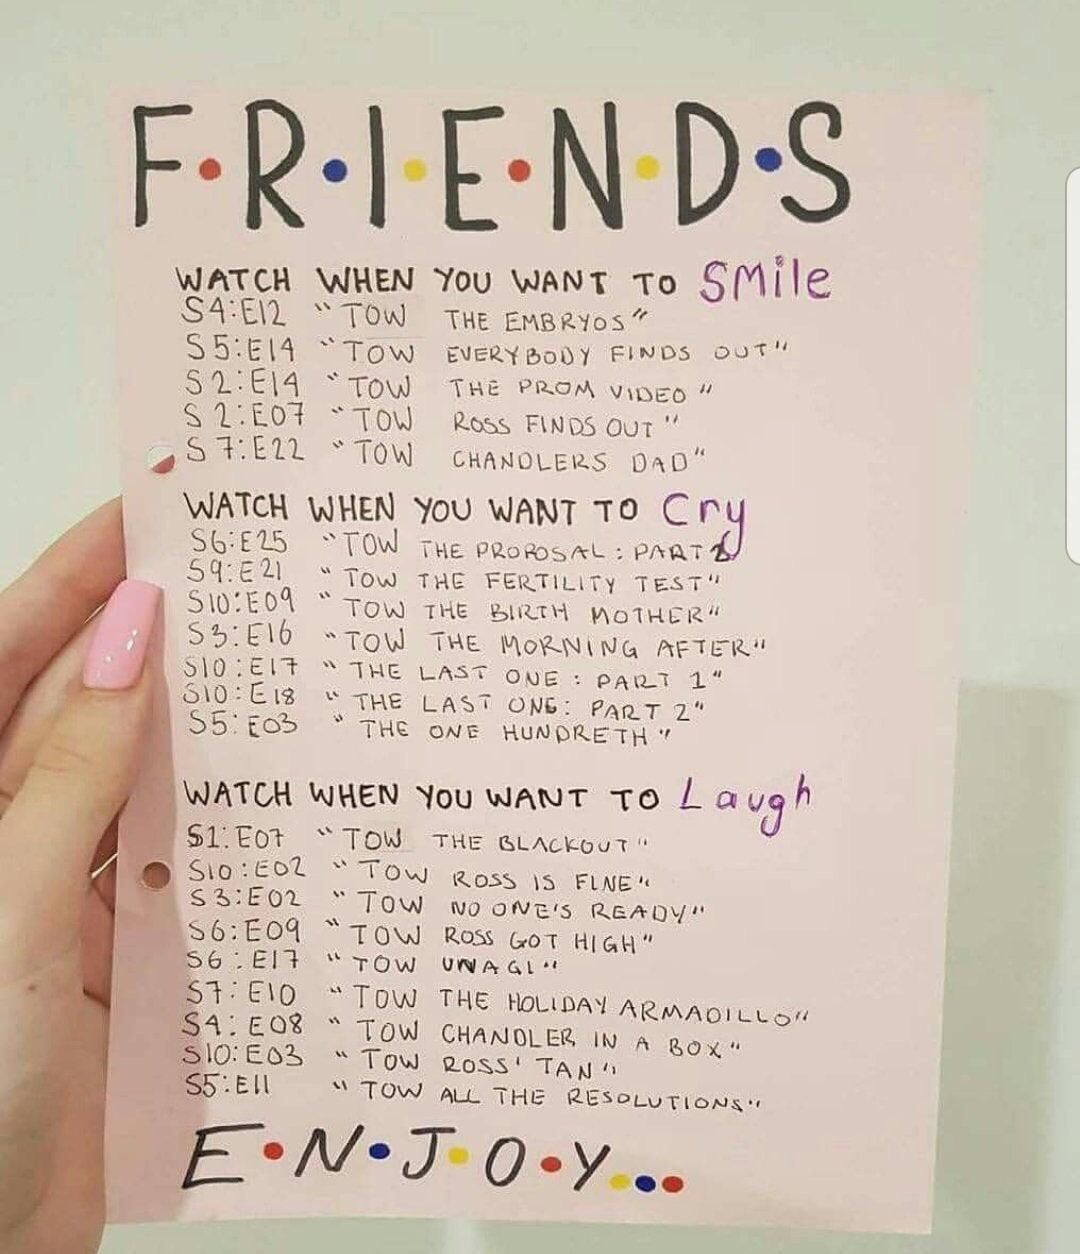 Guide for Friends episodes to watch